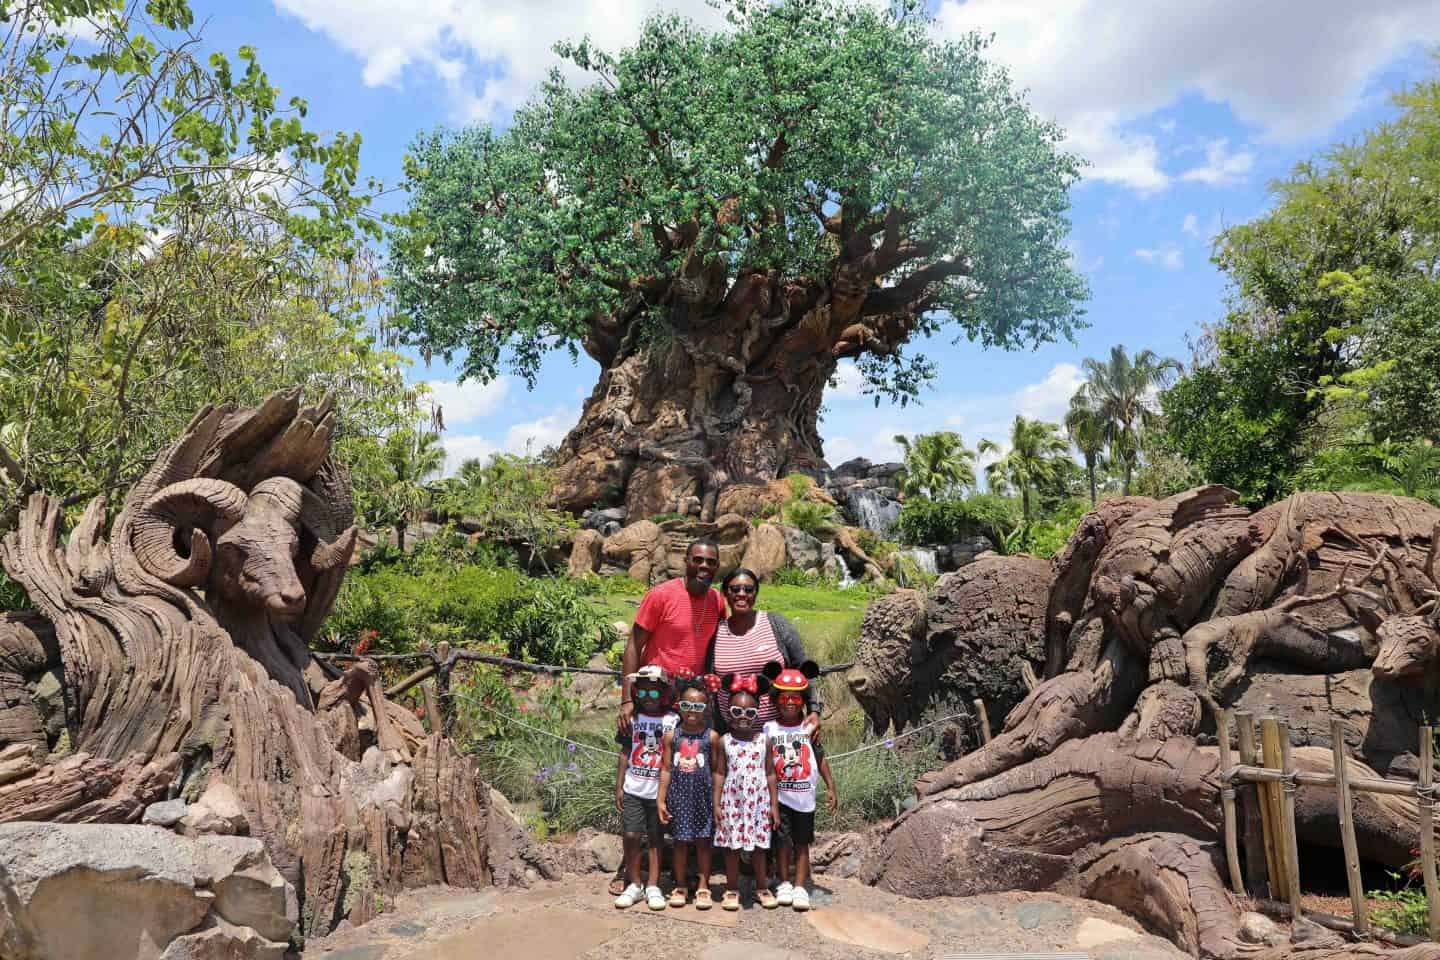 How To Visit Disney's Animal Kingdom in One Day